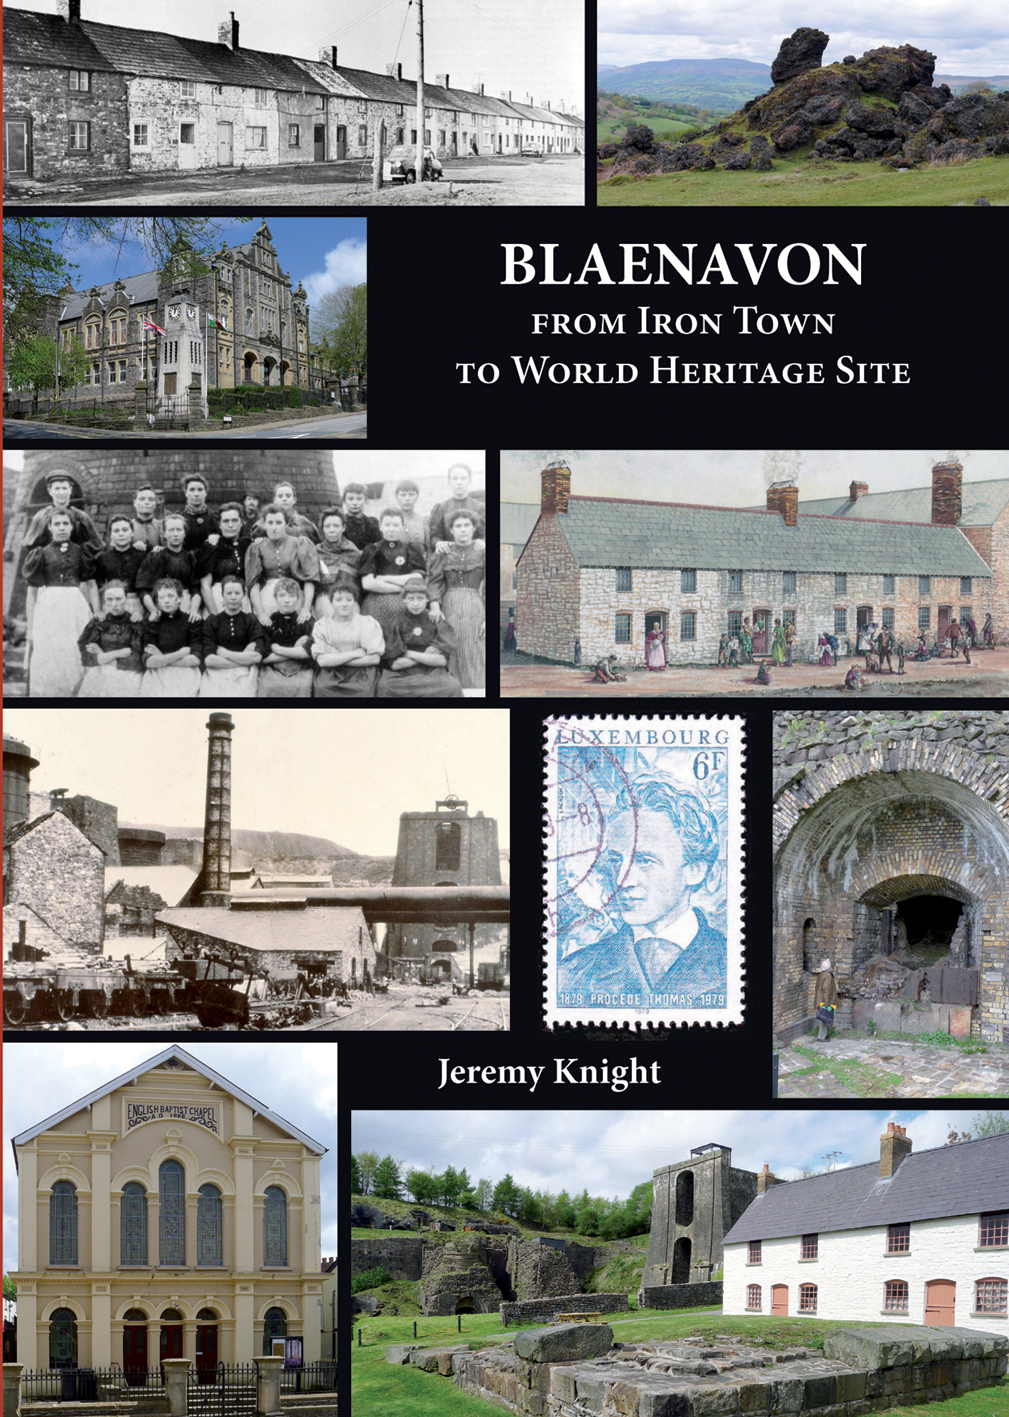 Launch of a new book on Blaenavon